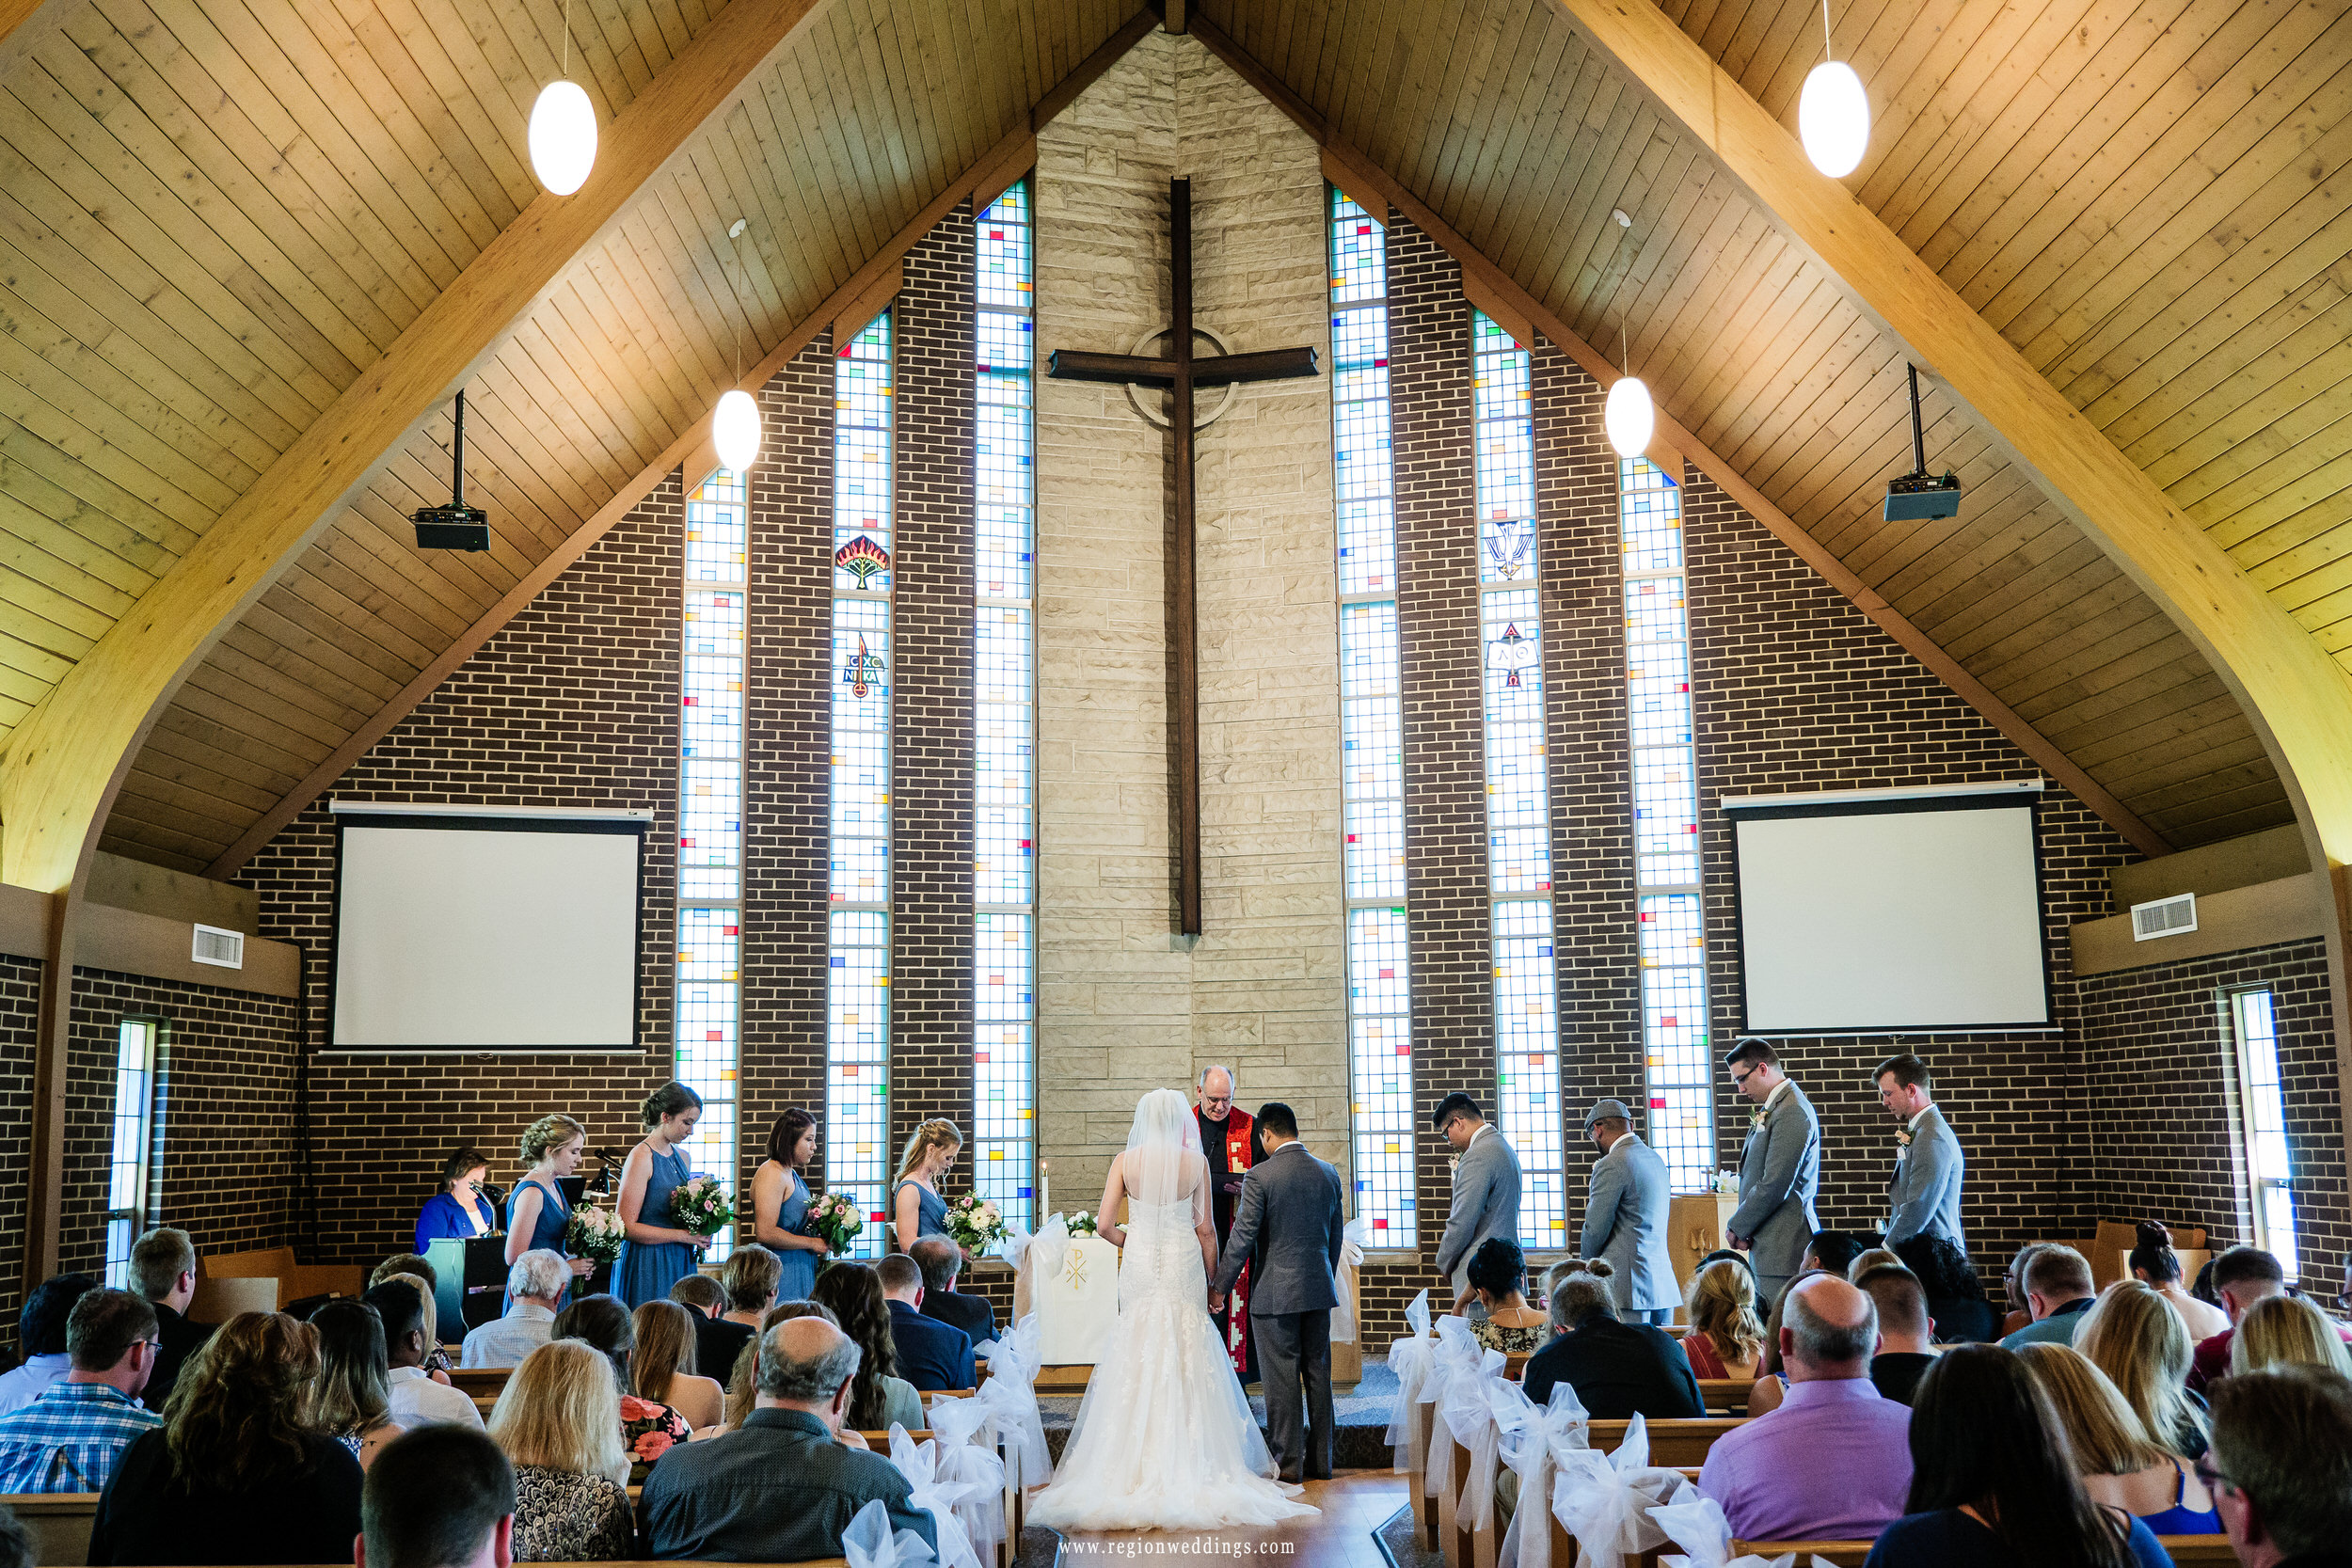 Wedding ceremony at First Presbyterian Church in Schererville, Indiana.